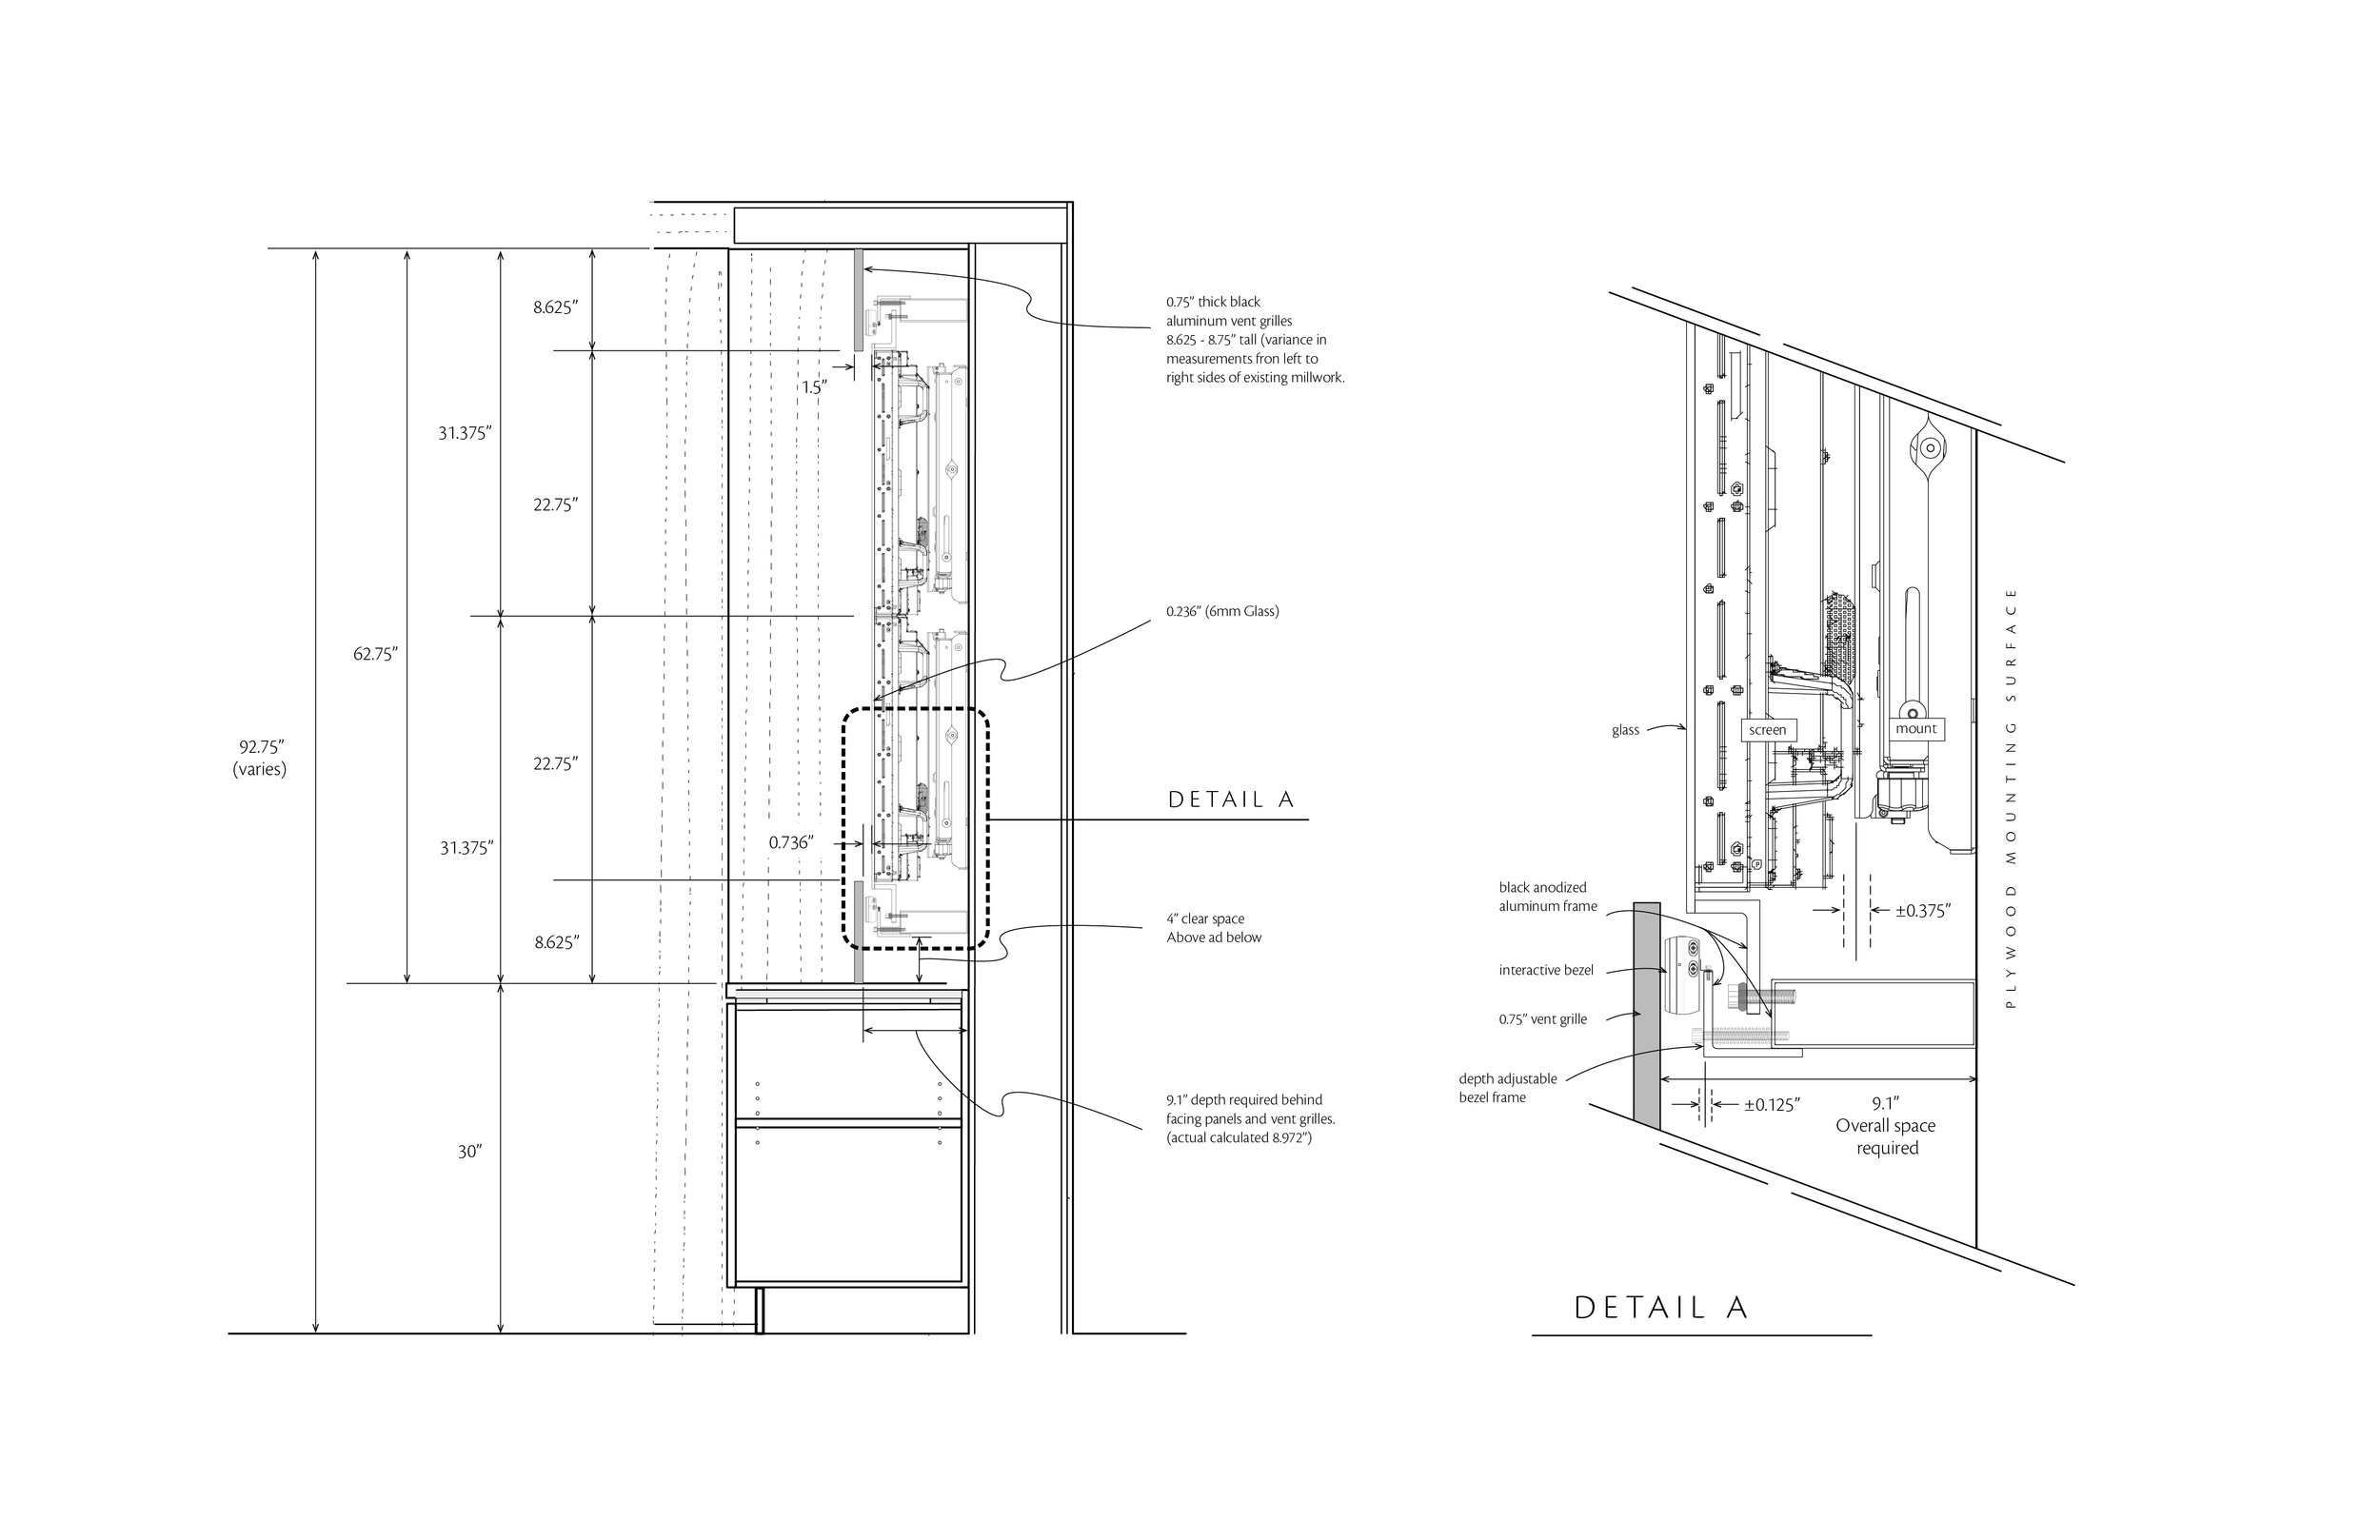 A small sample of the design effort that went into this project. This cross section shows the intricate assembly of millwork, screens and mounts, a tempered glass encasement, an infrared touch sensor that surrounds the screen with a mounting system for it that allows fine depth adjustment, and the vent grilles that sit above and below it all.